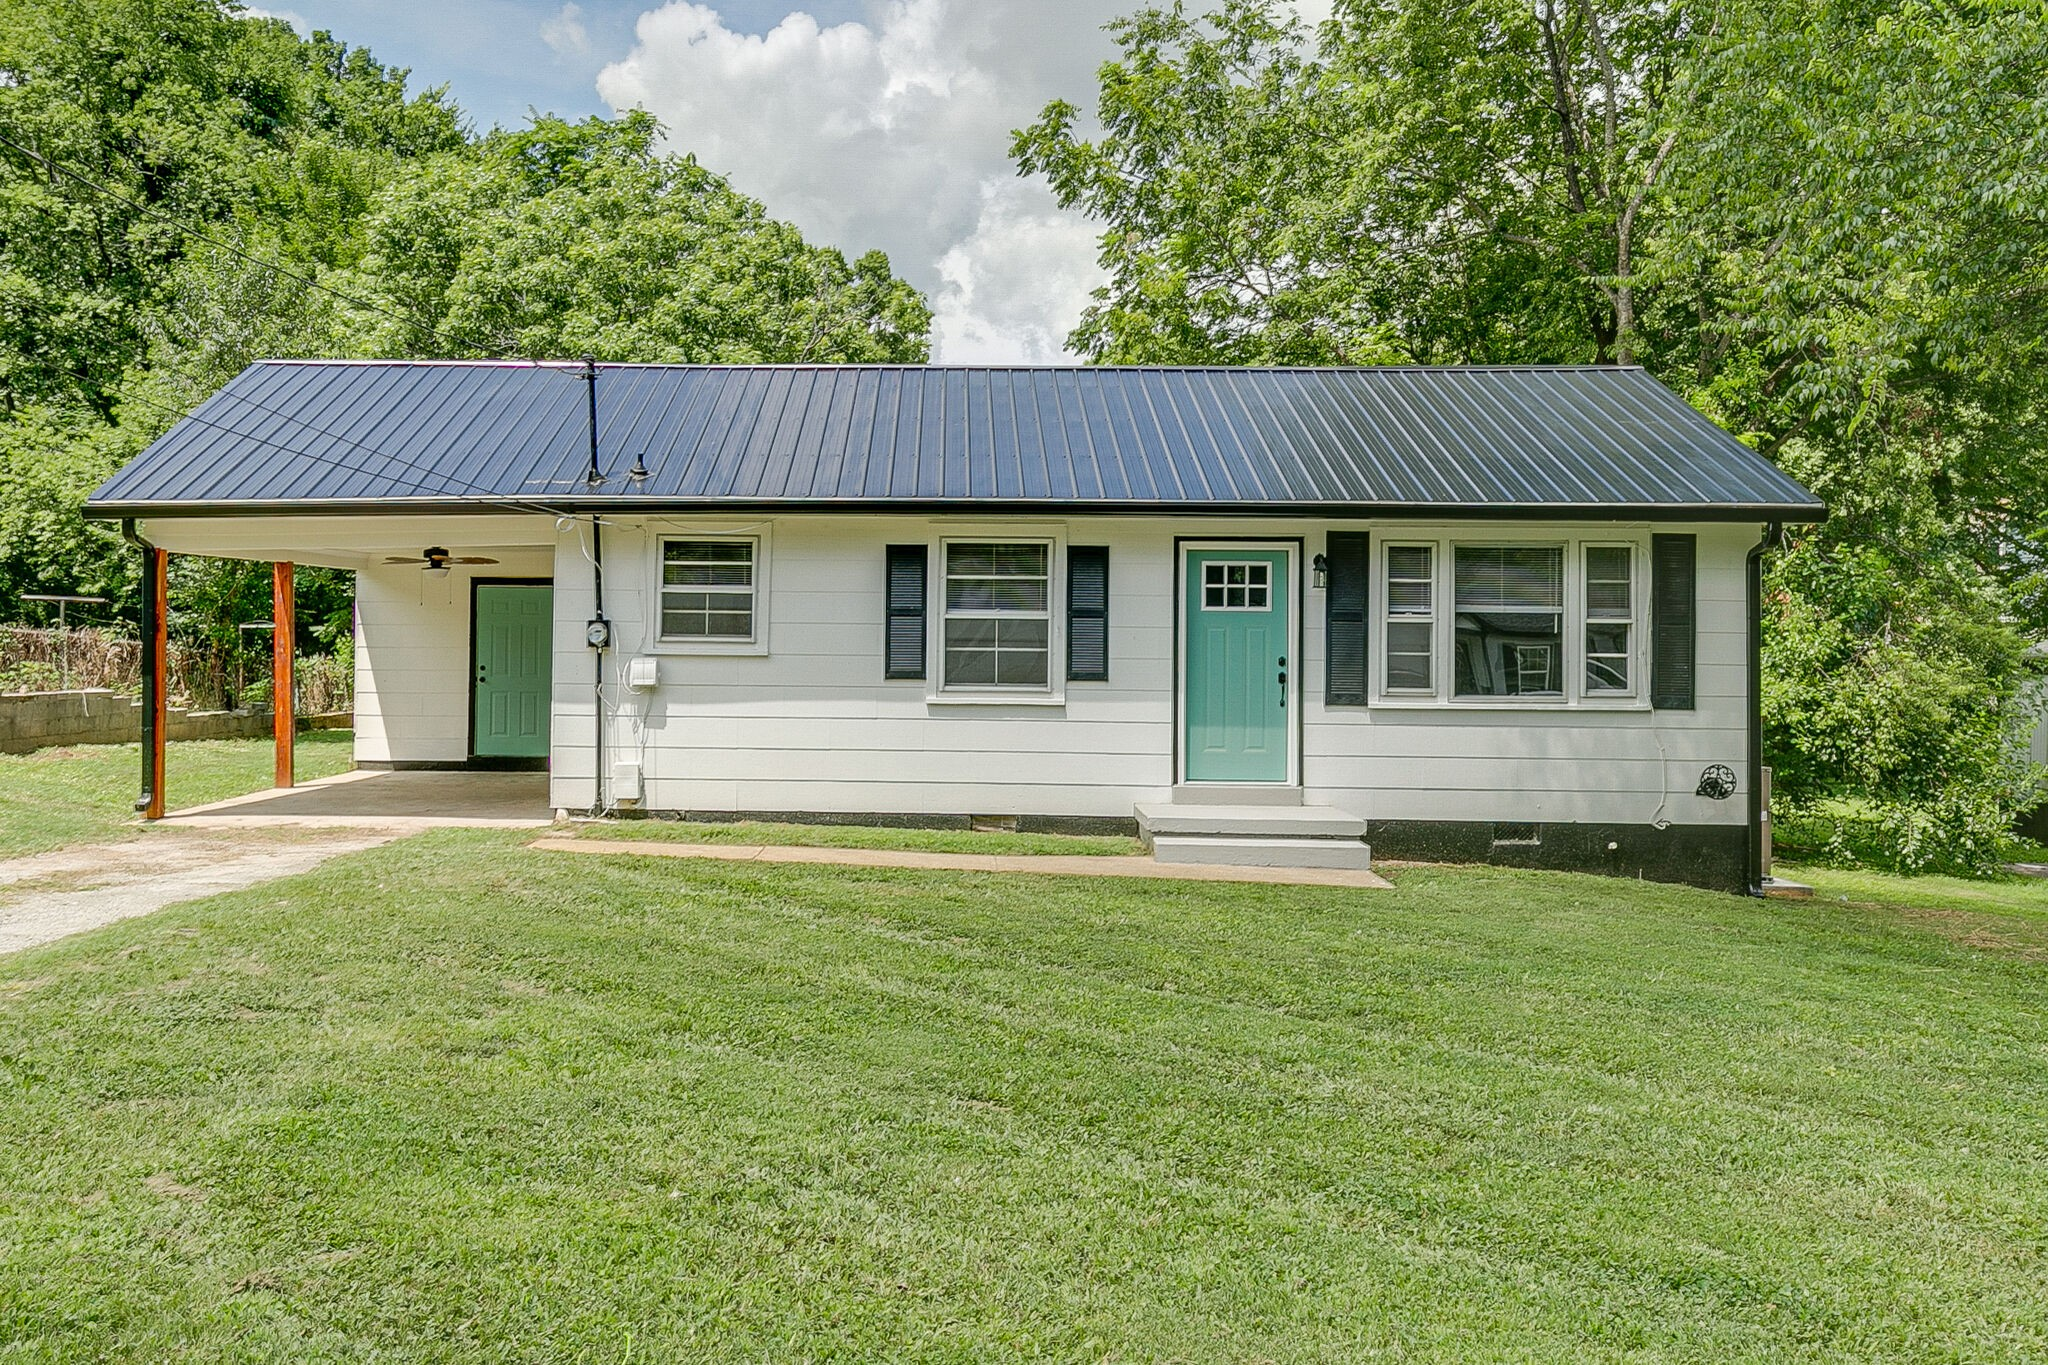 Gorgeous, sand and finish hardwood floors in this home! Quaint 2 BR/1 BA with spacious yard. Great starter home, includes all appliances including washer/dryer. New roof and HVAC. Priced below many of the new homes in the neighborhood.